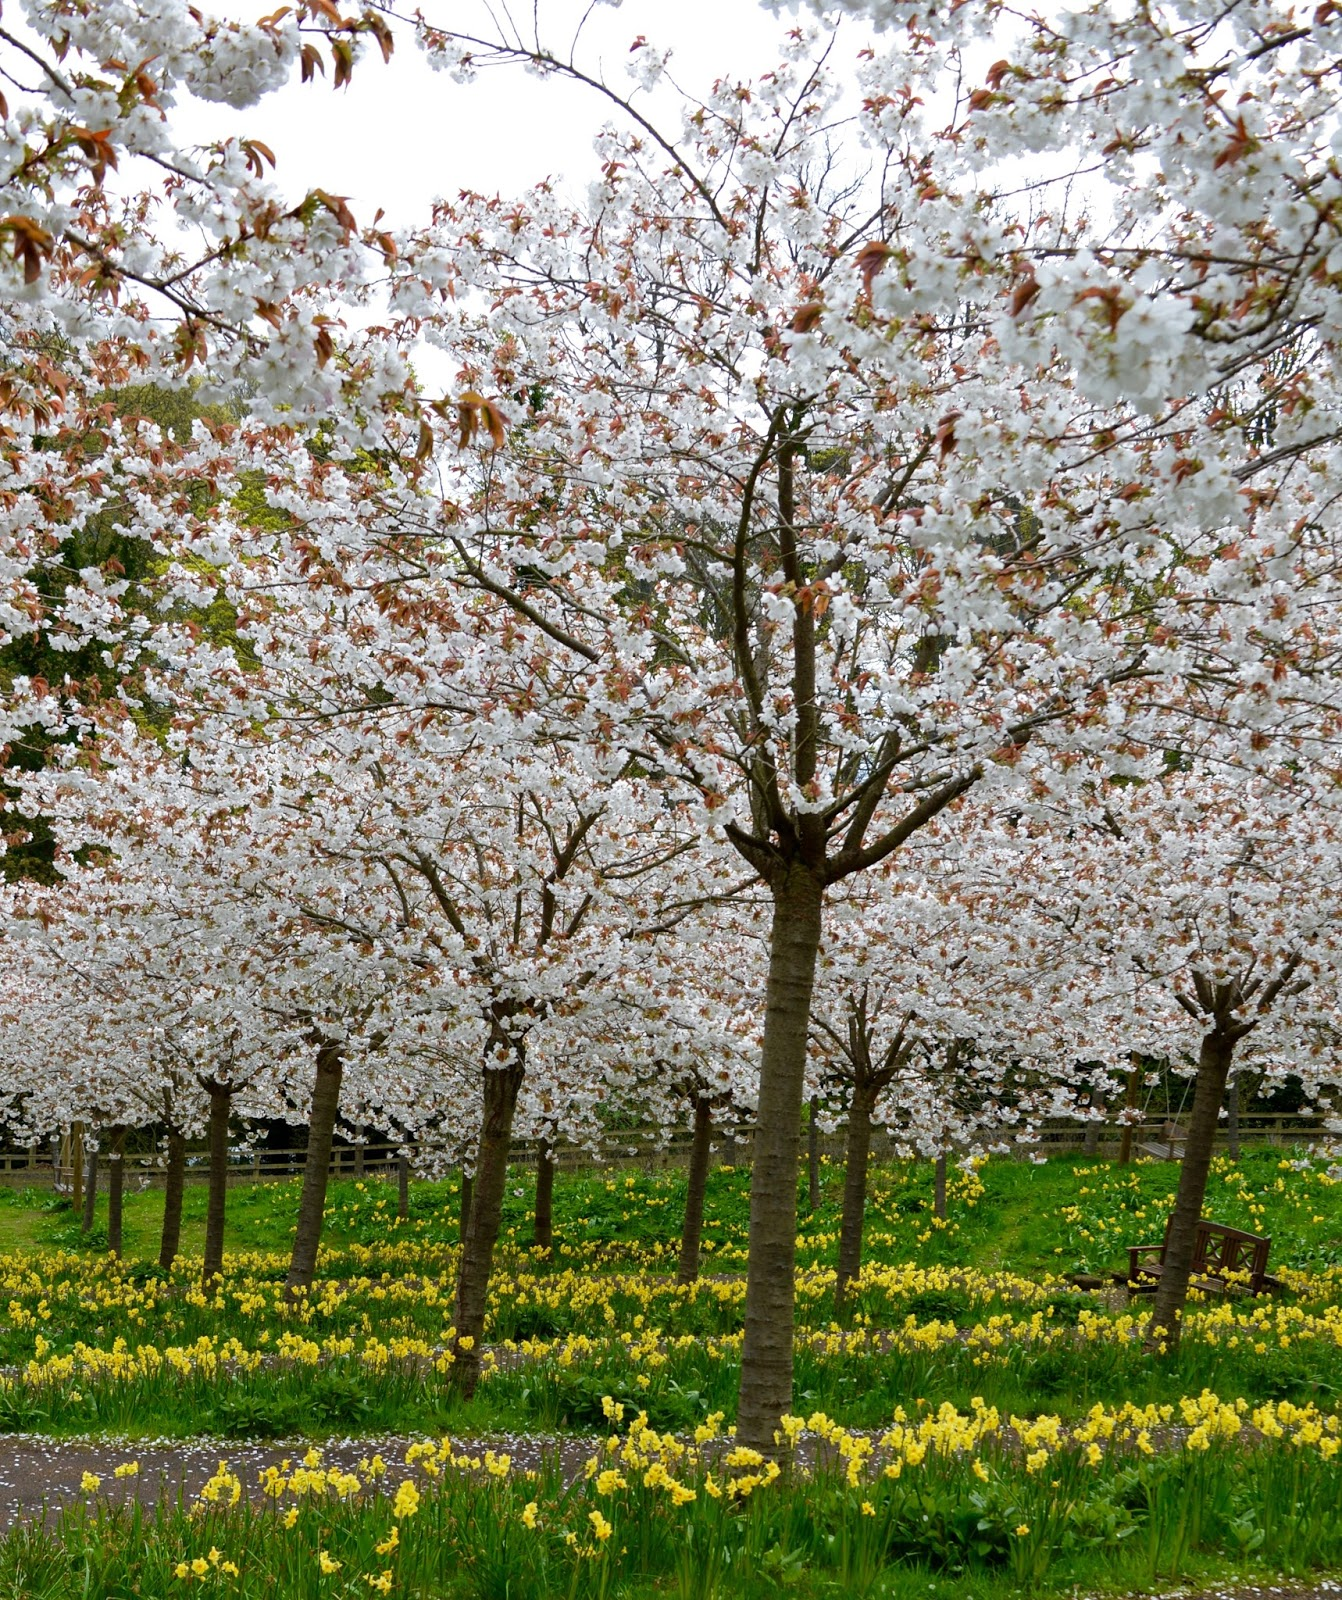 The Cherry Blossom Orchard at The Alnwick Garden